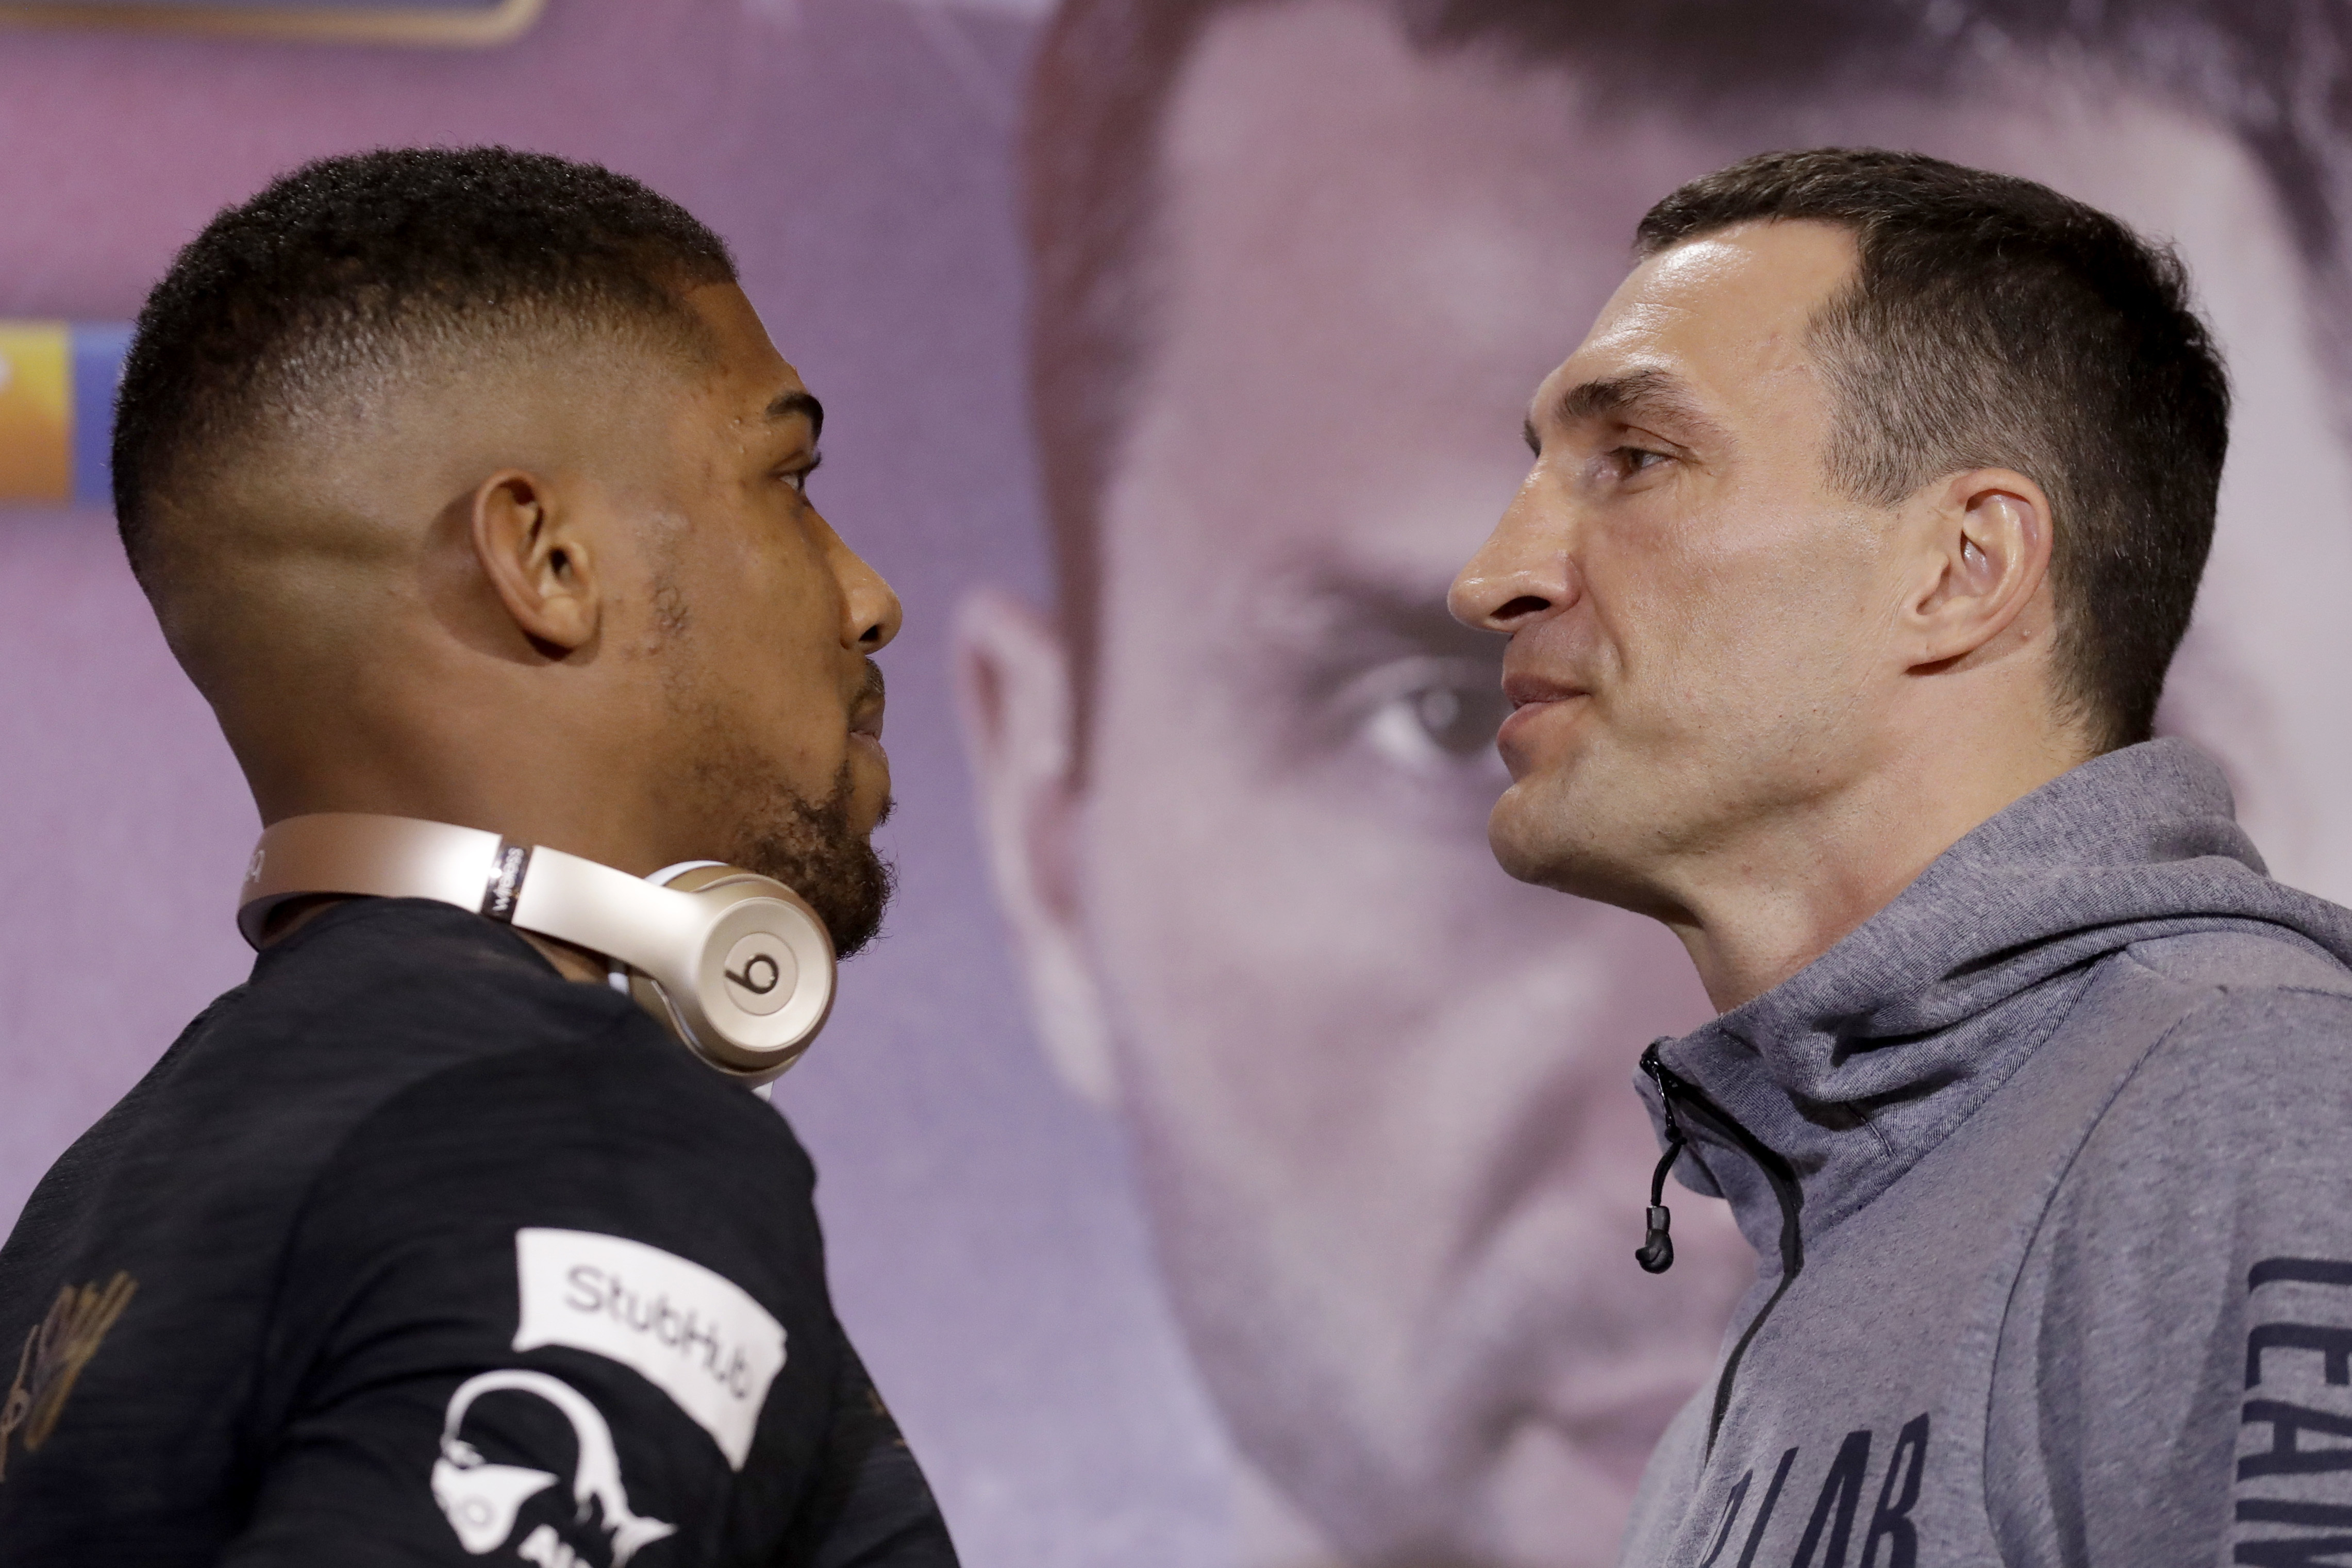 British boxer Anthony Joshua, left, and Ukrainian boxer Wladimir Klitschko pose head-to-head for the media at the end of a press conference at Sky studios in west London, Thursday, April 27. They are due to fight for the IBF heavyweight world title on Saturday at Wembley stadium in London. (AP Photo/Matt Dunham)